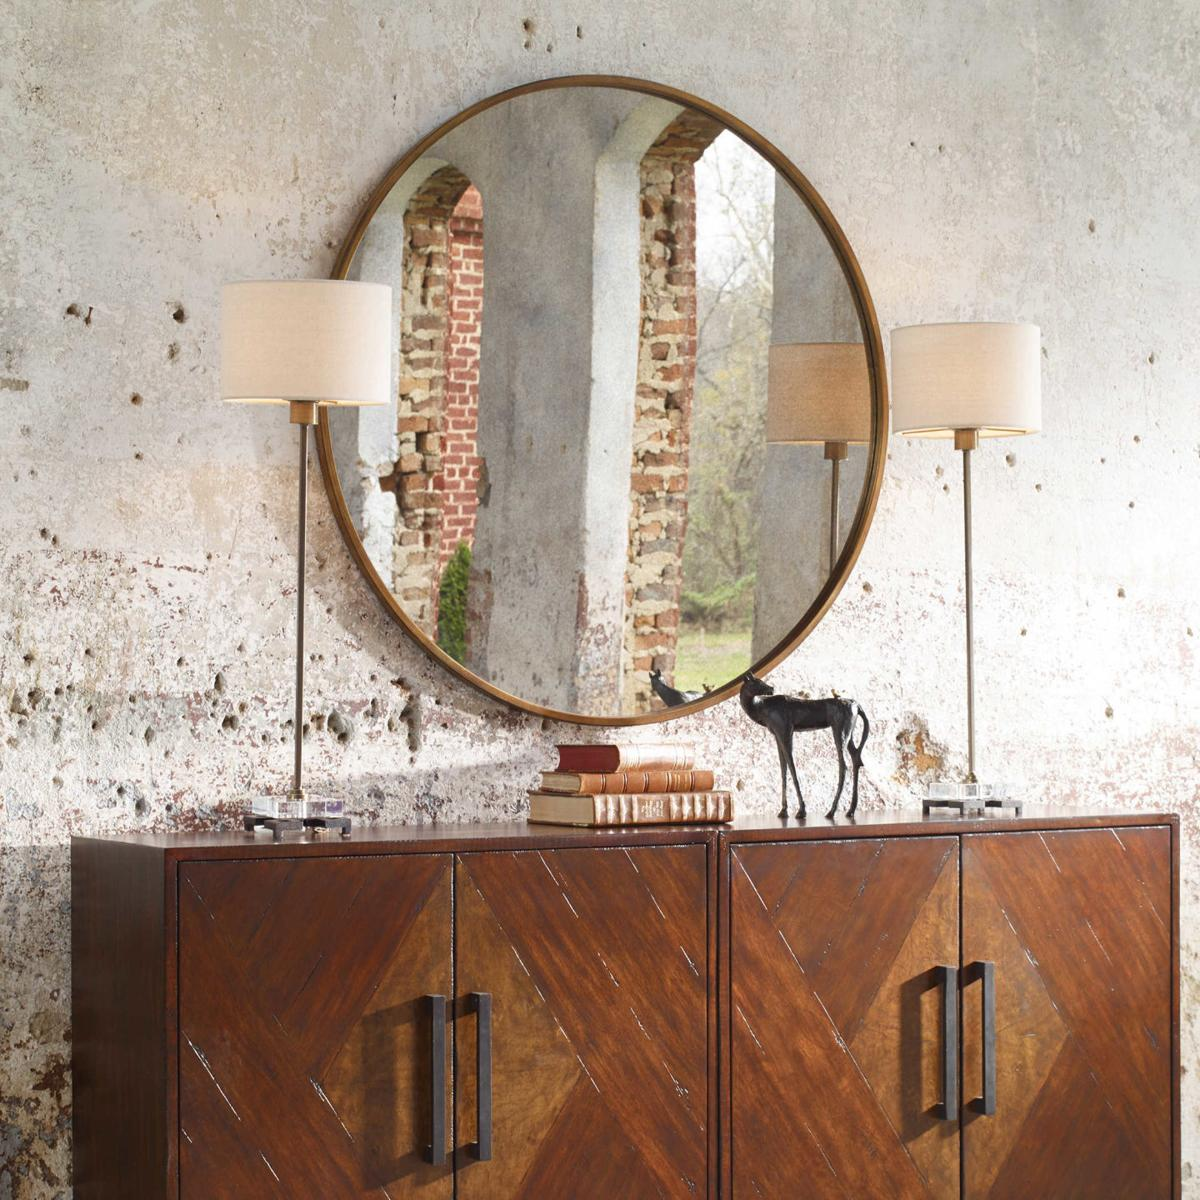 uttermost-junius-round-mirror.jpg